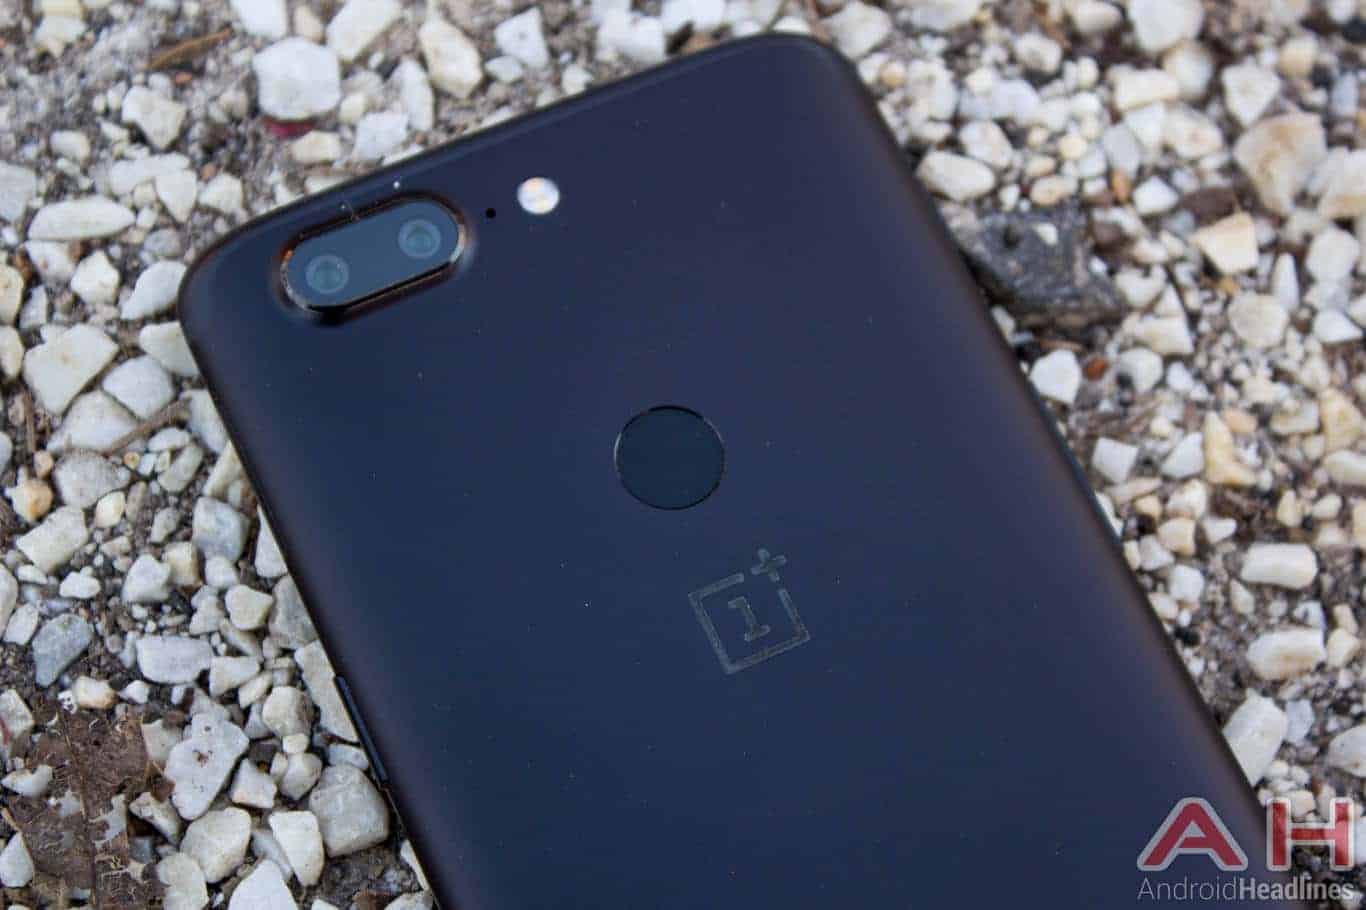 Phone Comparisons: Google Pixel 2 XL vs OnePlus 5T